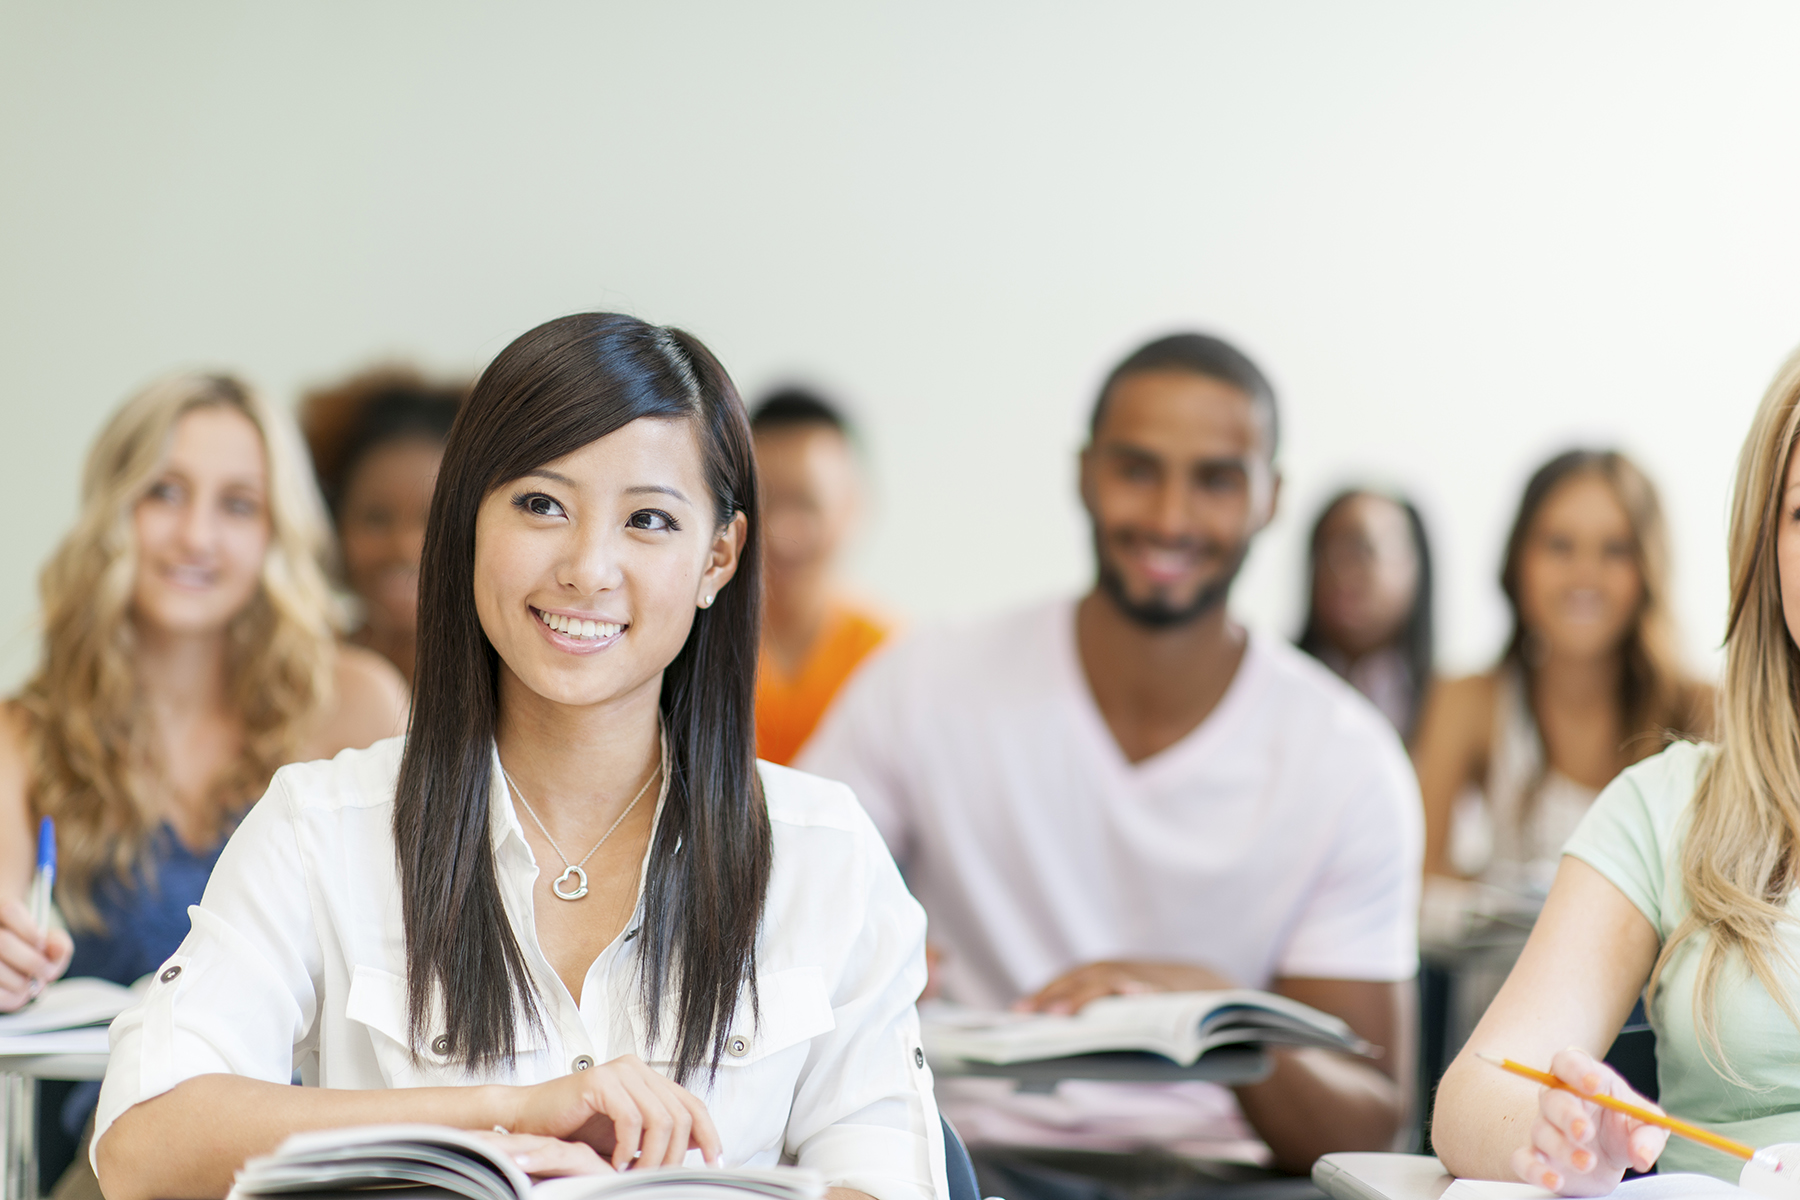 Diverse group of university students in classroom